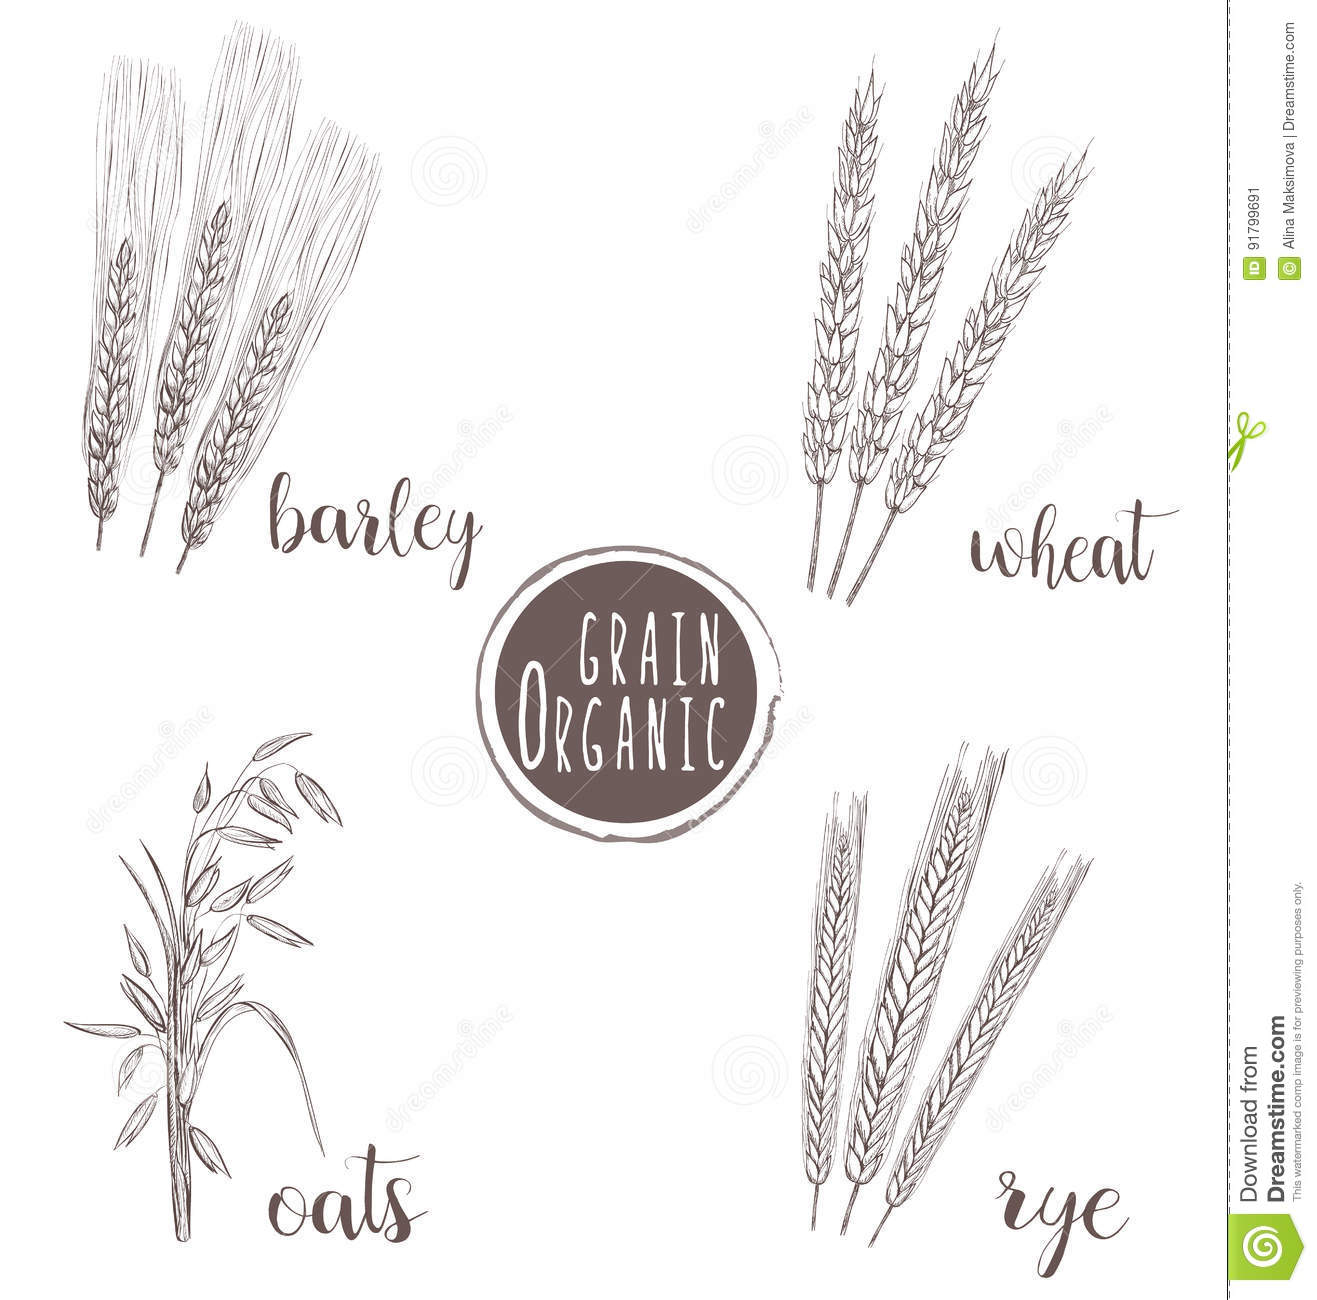 Organic Grain Sketch Illustration Hand Drawing Wheat